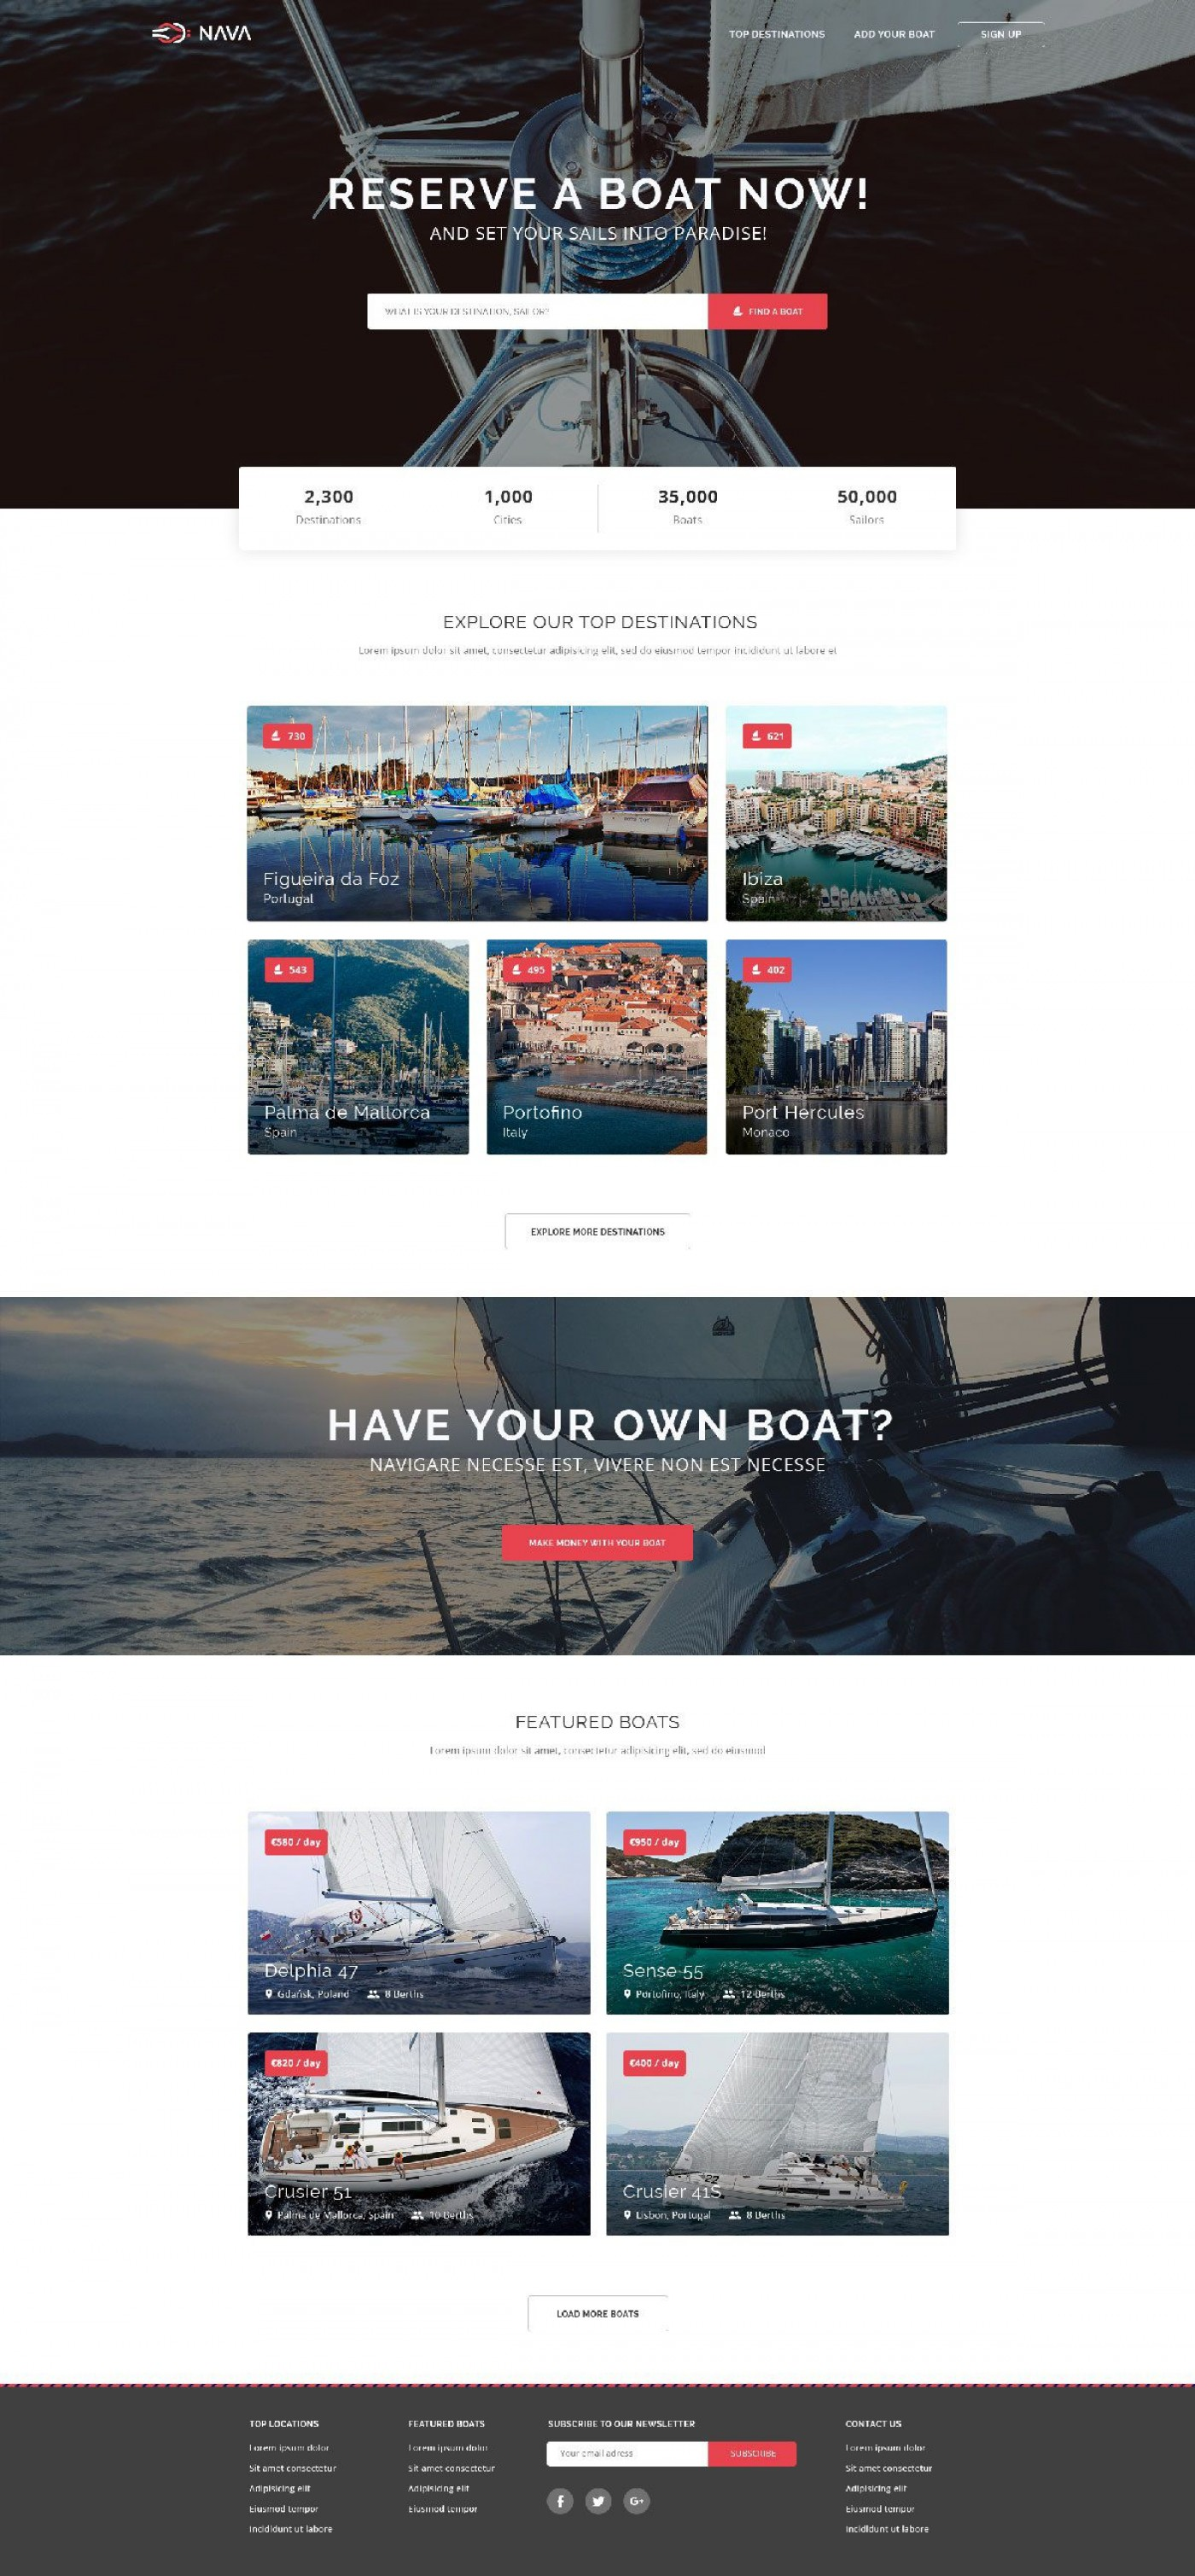 006 Remarkable One Page Website Template Psd Free Download Idea 1400